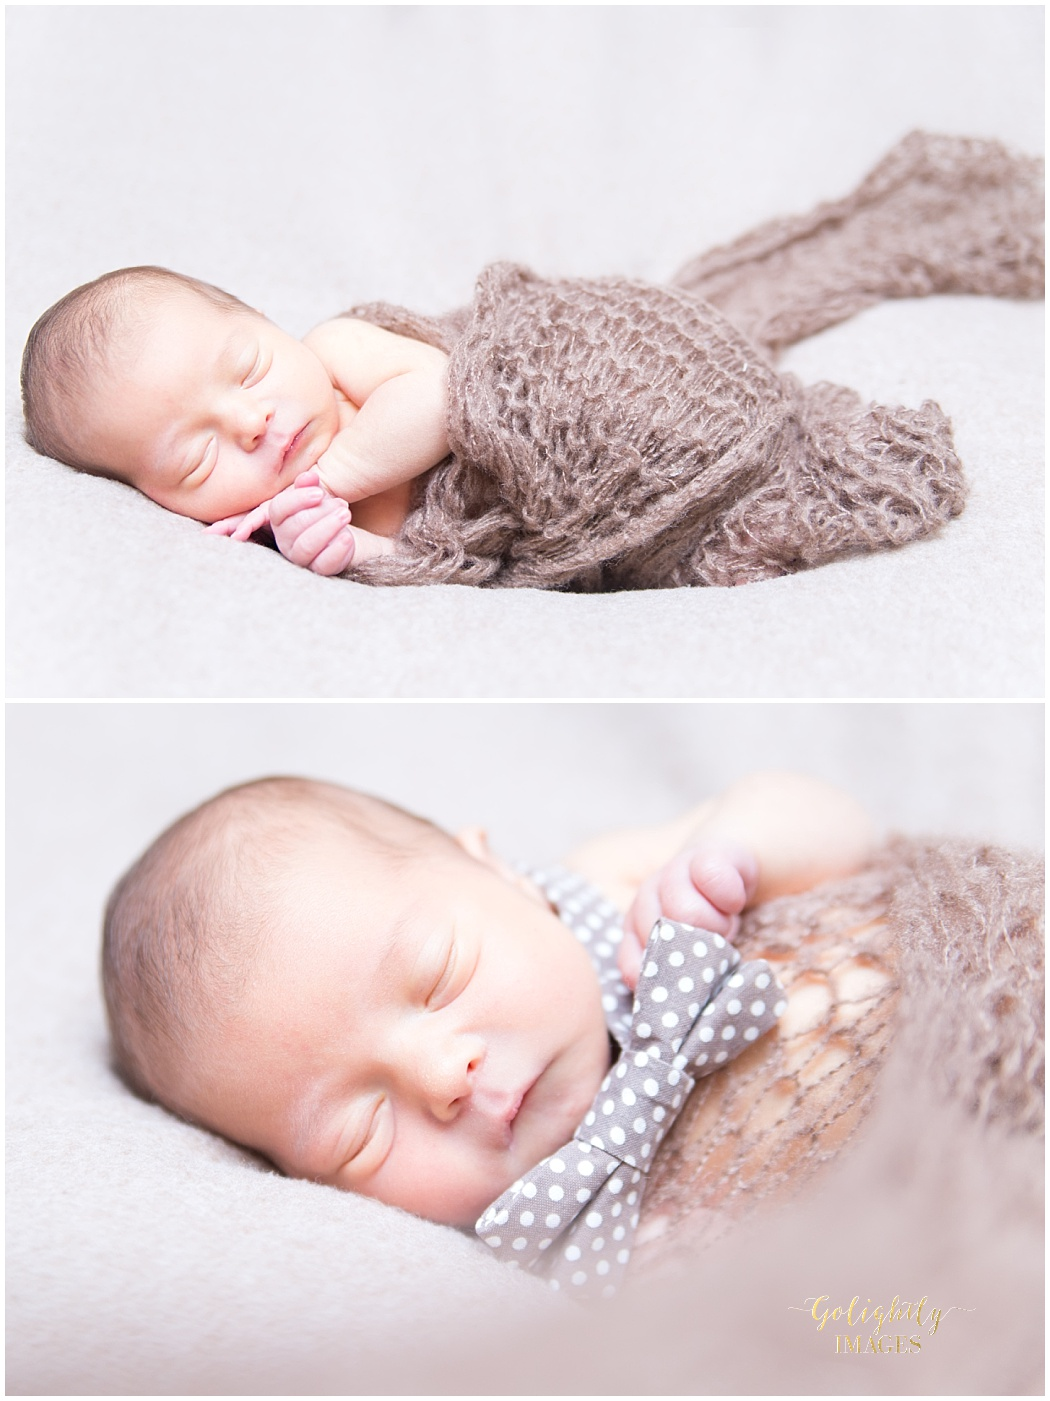 Newborn Portraits by Golighlty Images